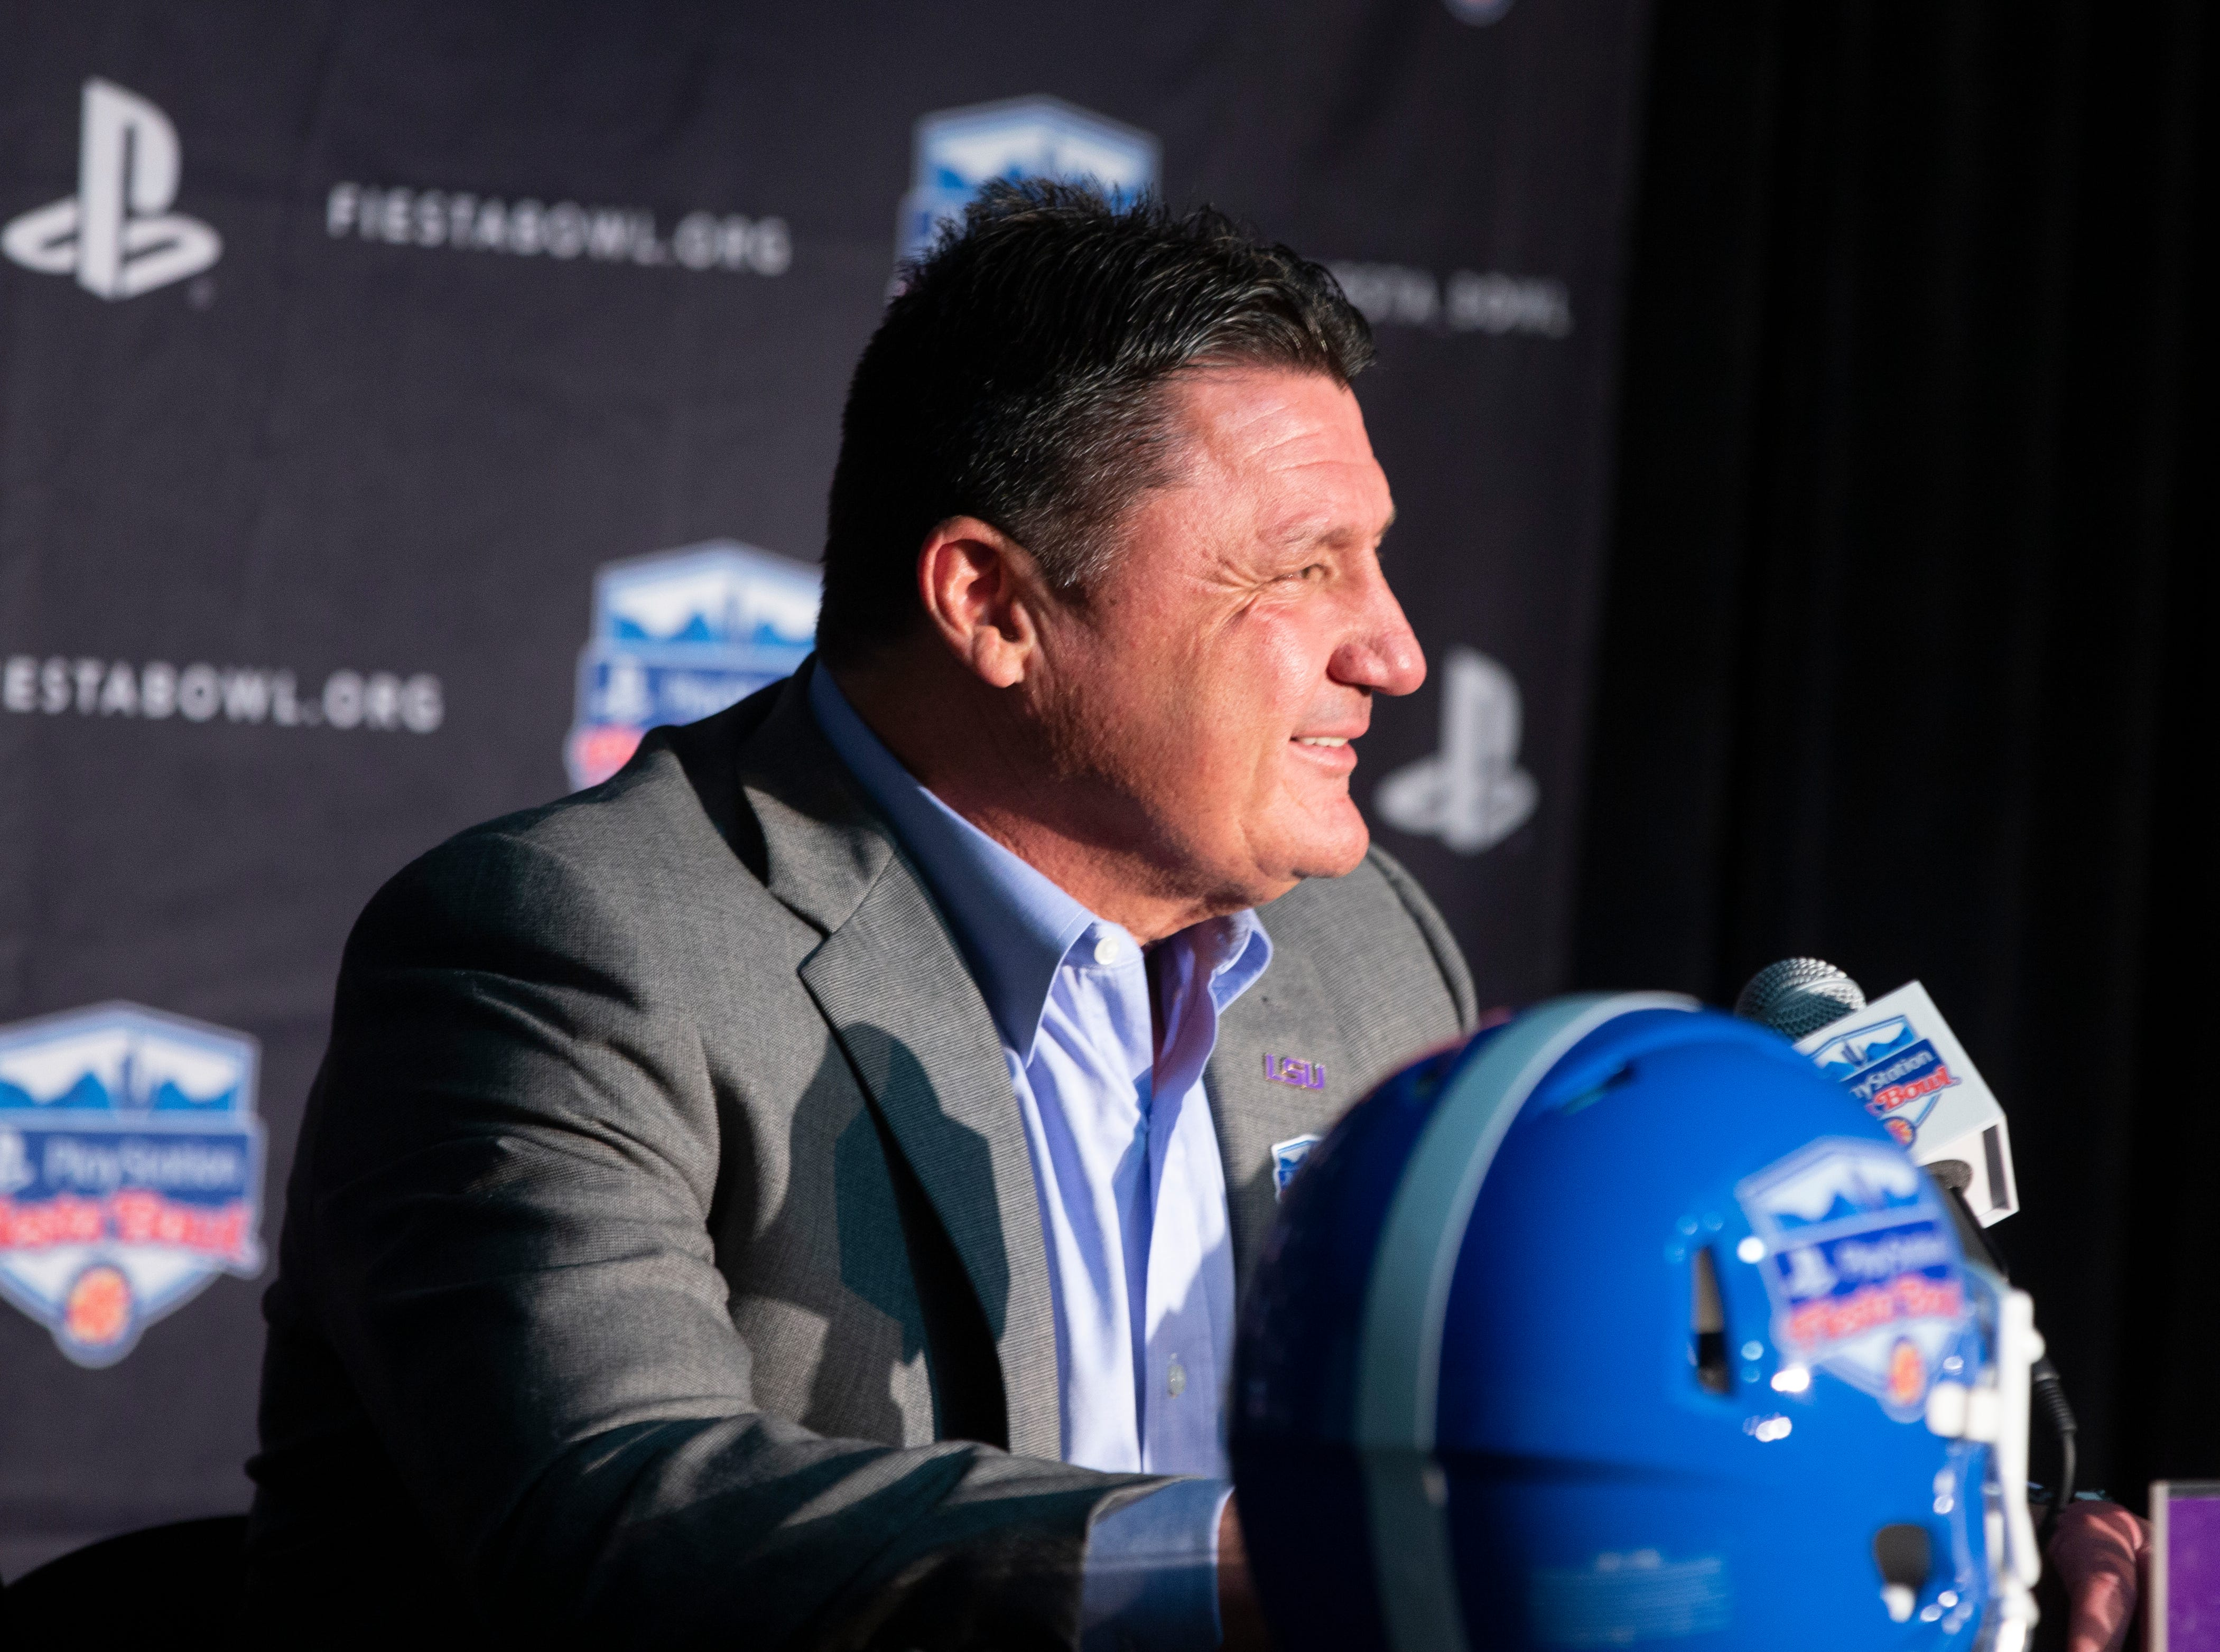 LSU head football coach Ed Orgeron speaks to the media after arriving at Sky Harbor International Airport in Phoenix on December 27. LSU will face Central Florida in the Fiesta Bowl on New Year's Day